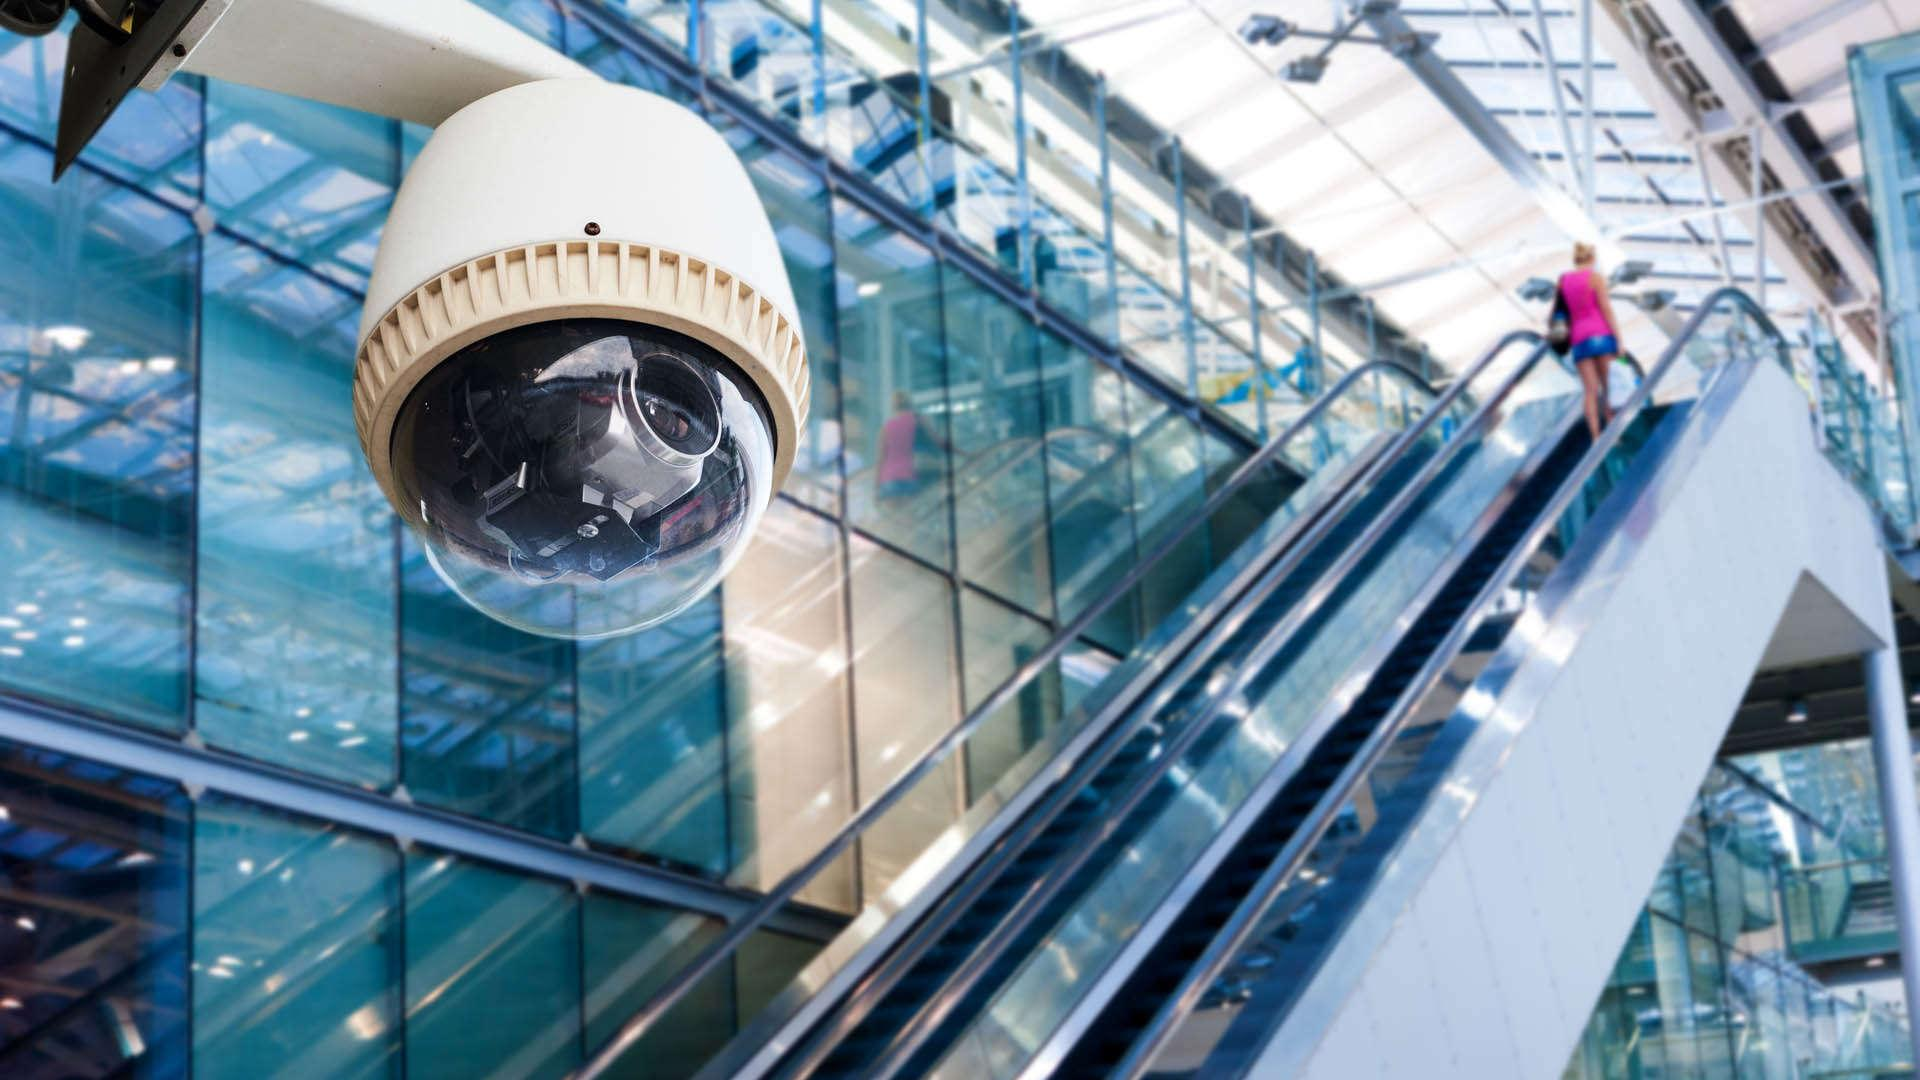 3 Ways CCTV Can Help Your Business